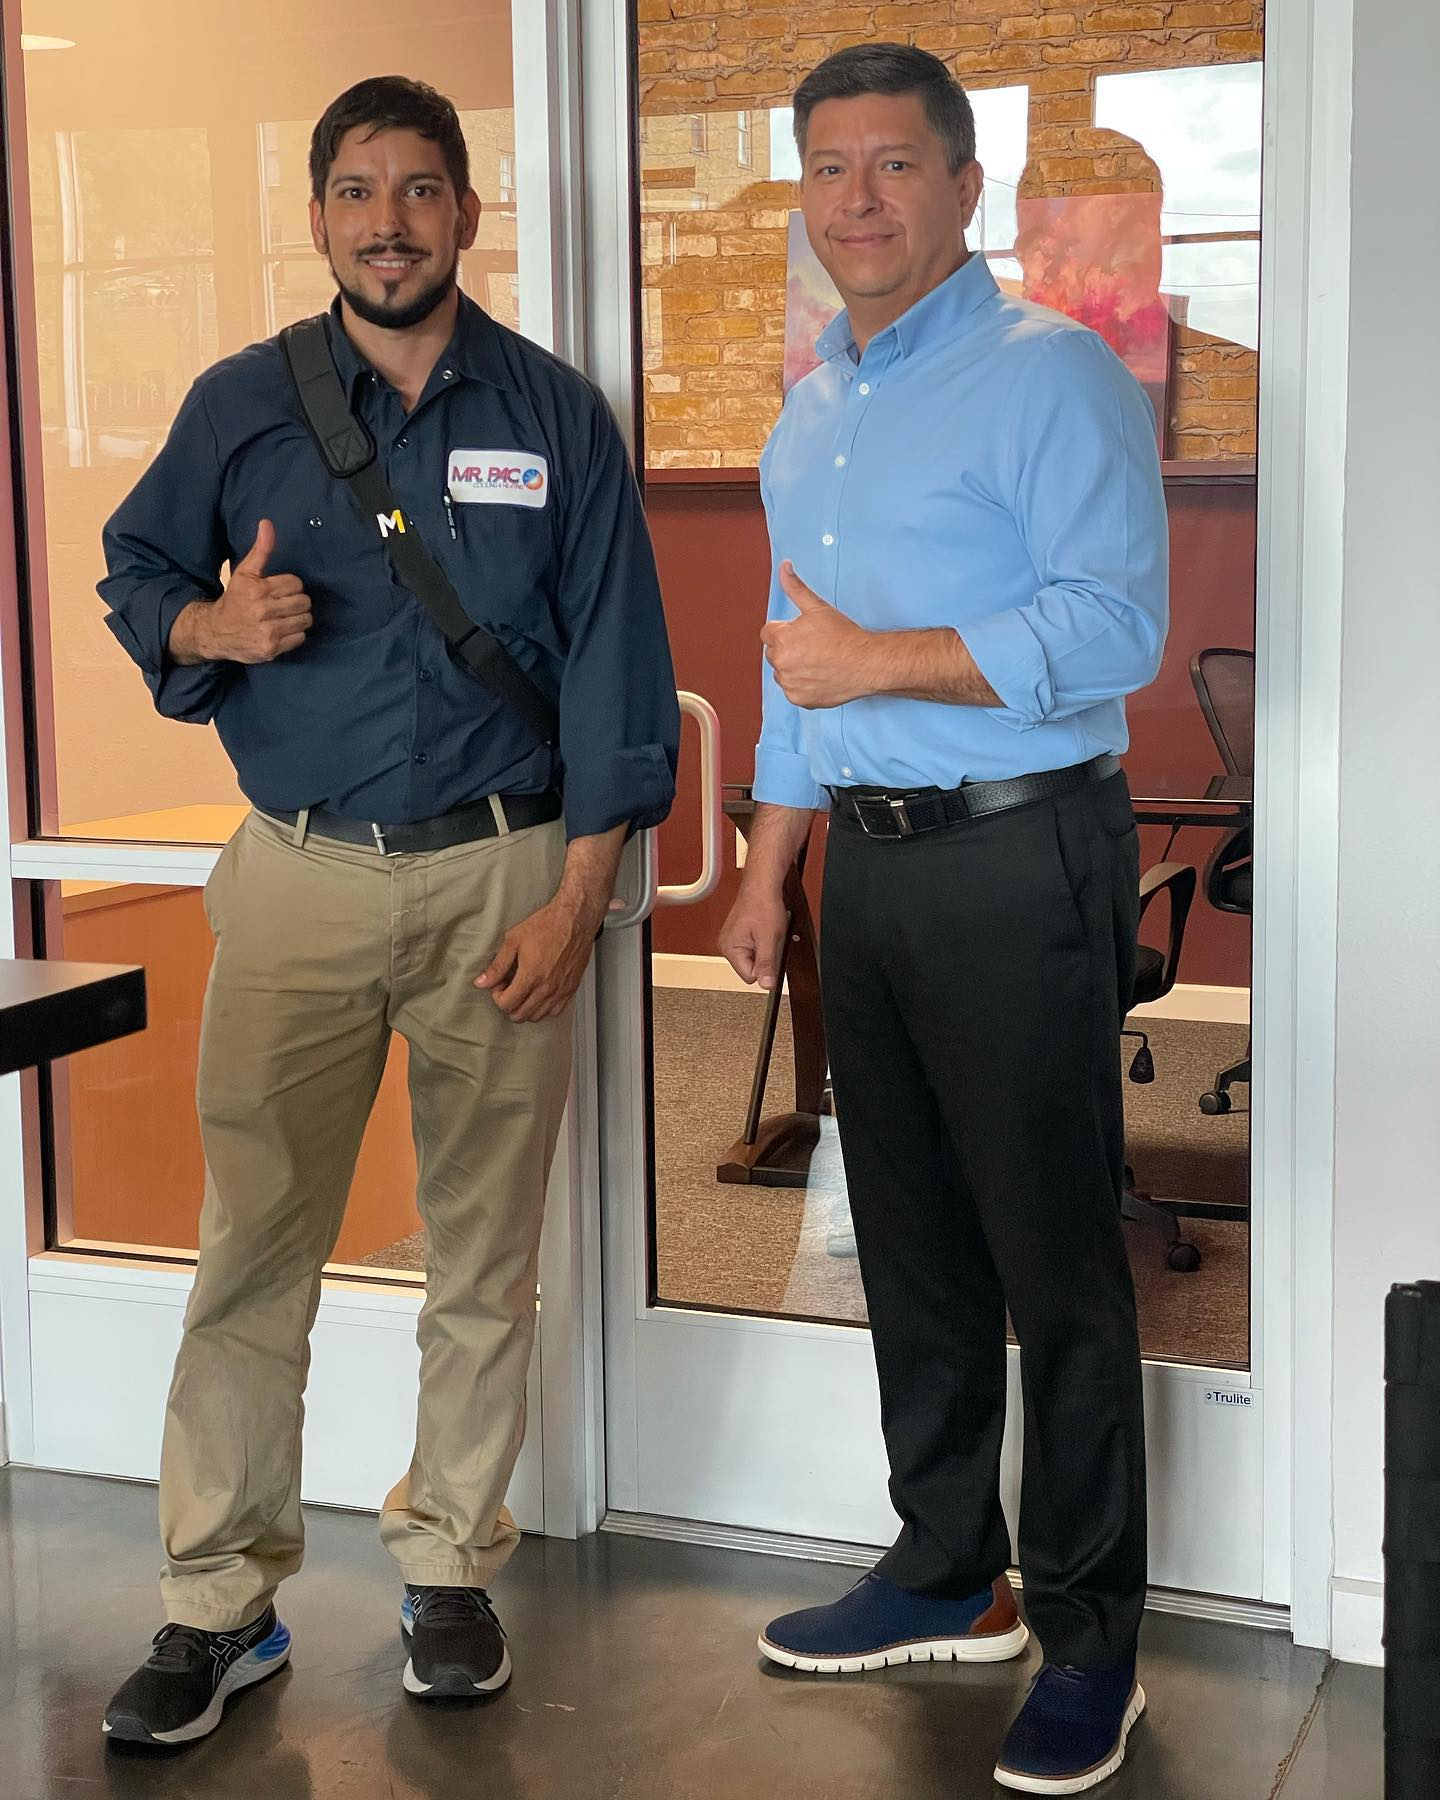 Mr. Pac Cooling & Heating: Orlando Flores